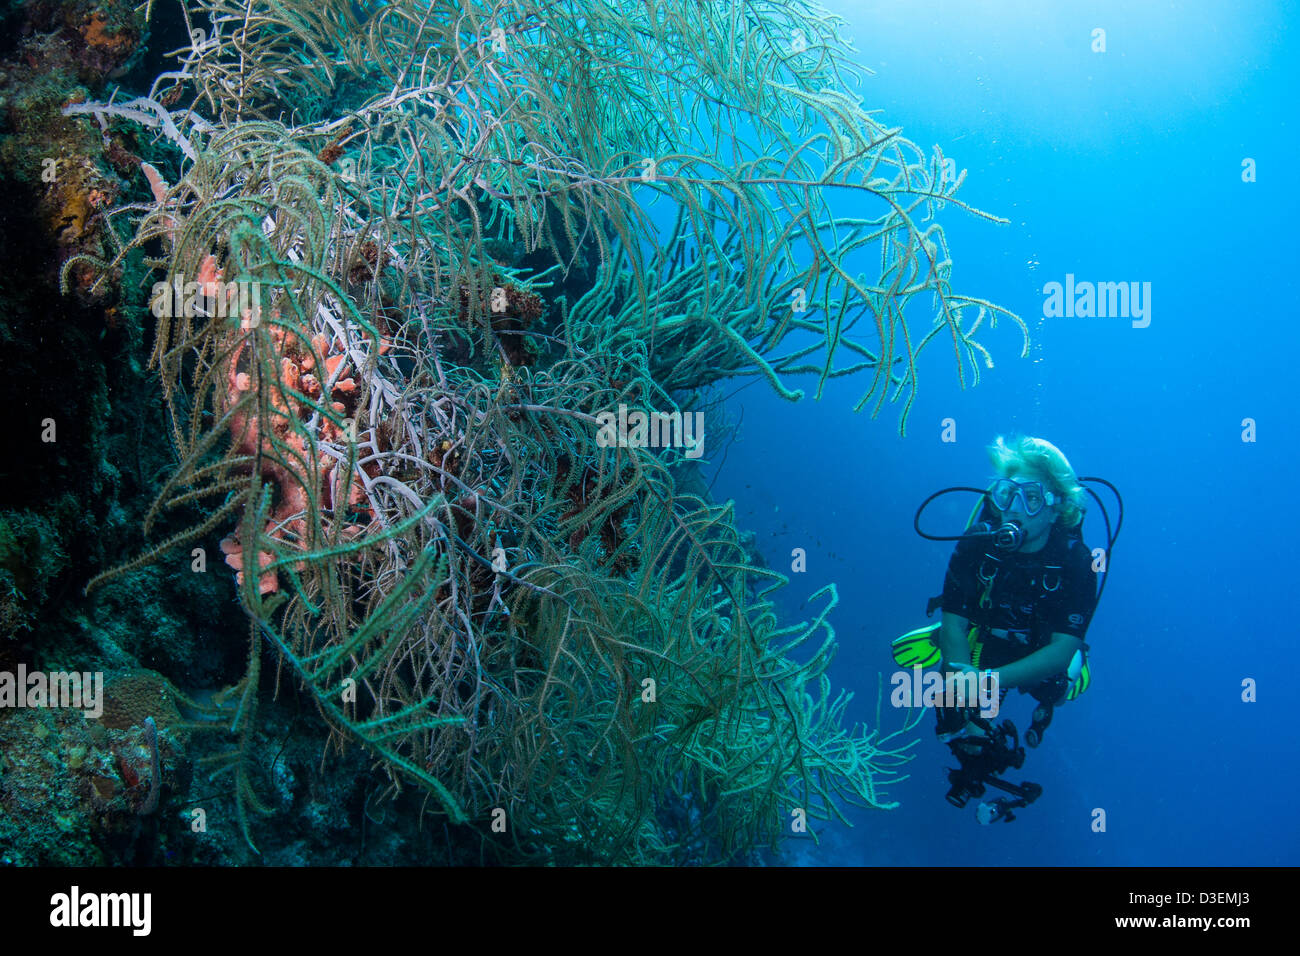 Dive Certification Stock Photos & Dive Certification Stock Images ...